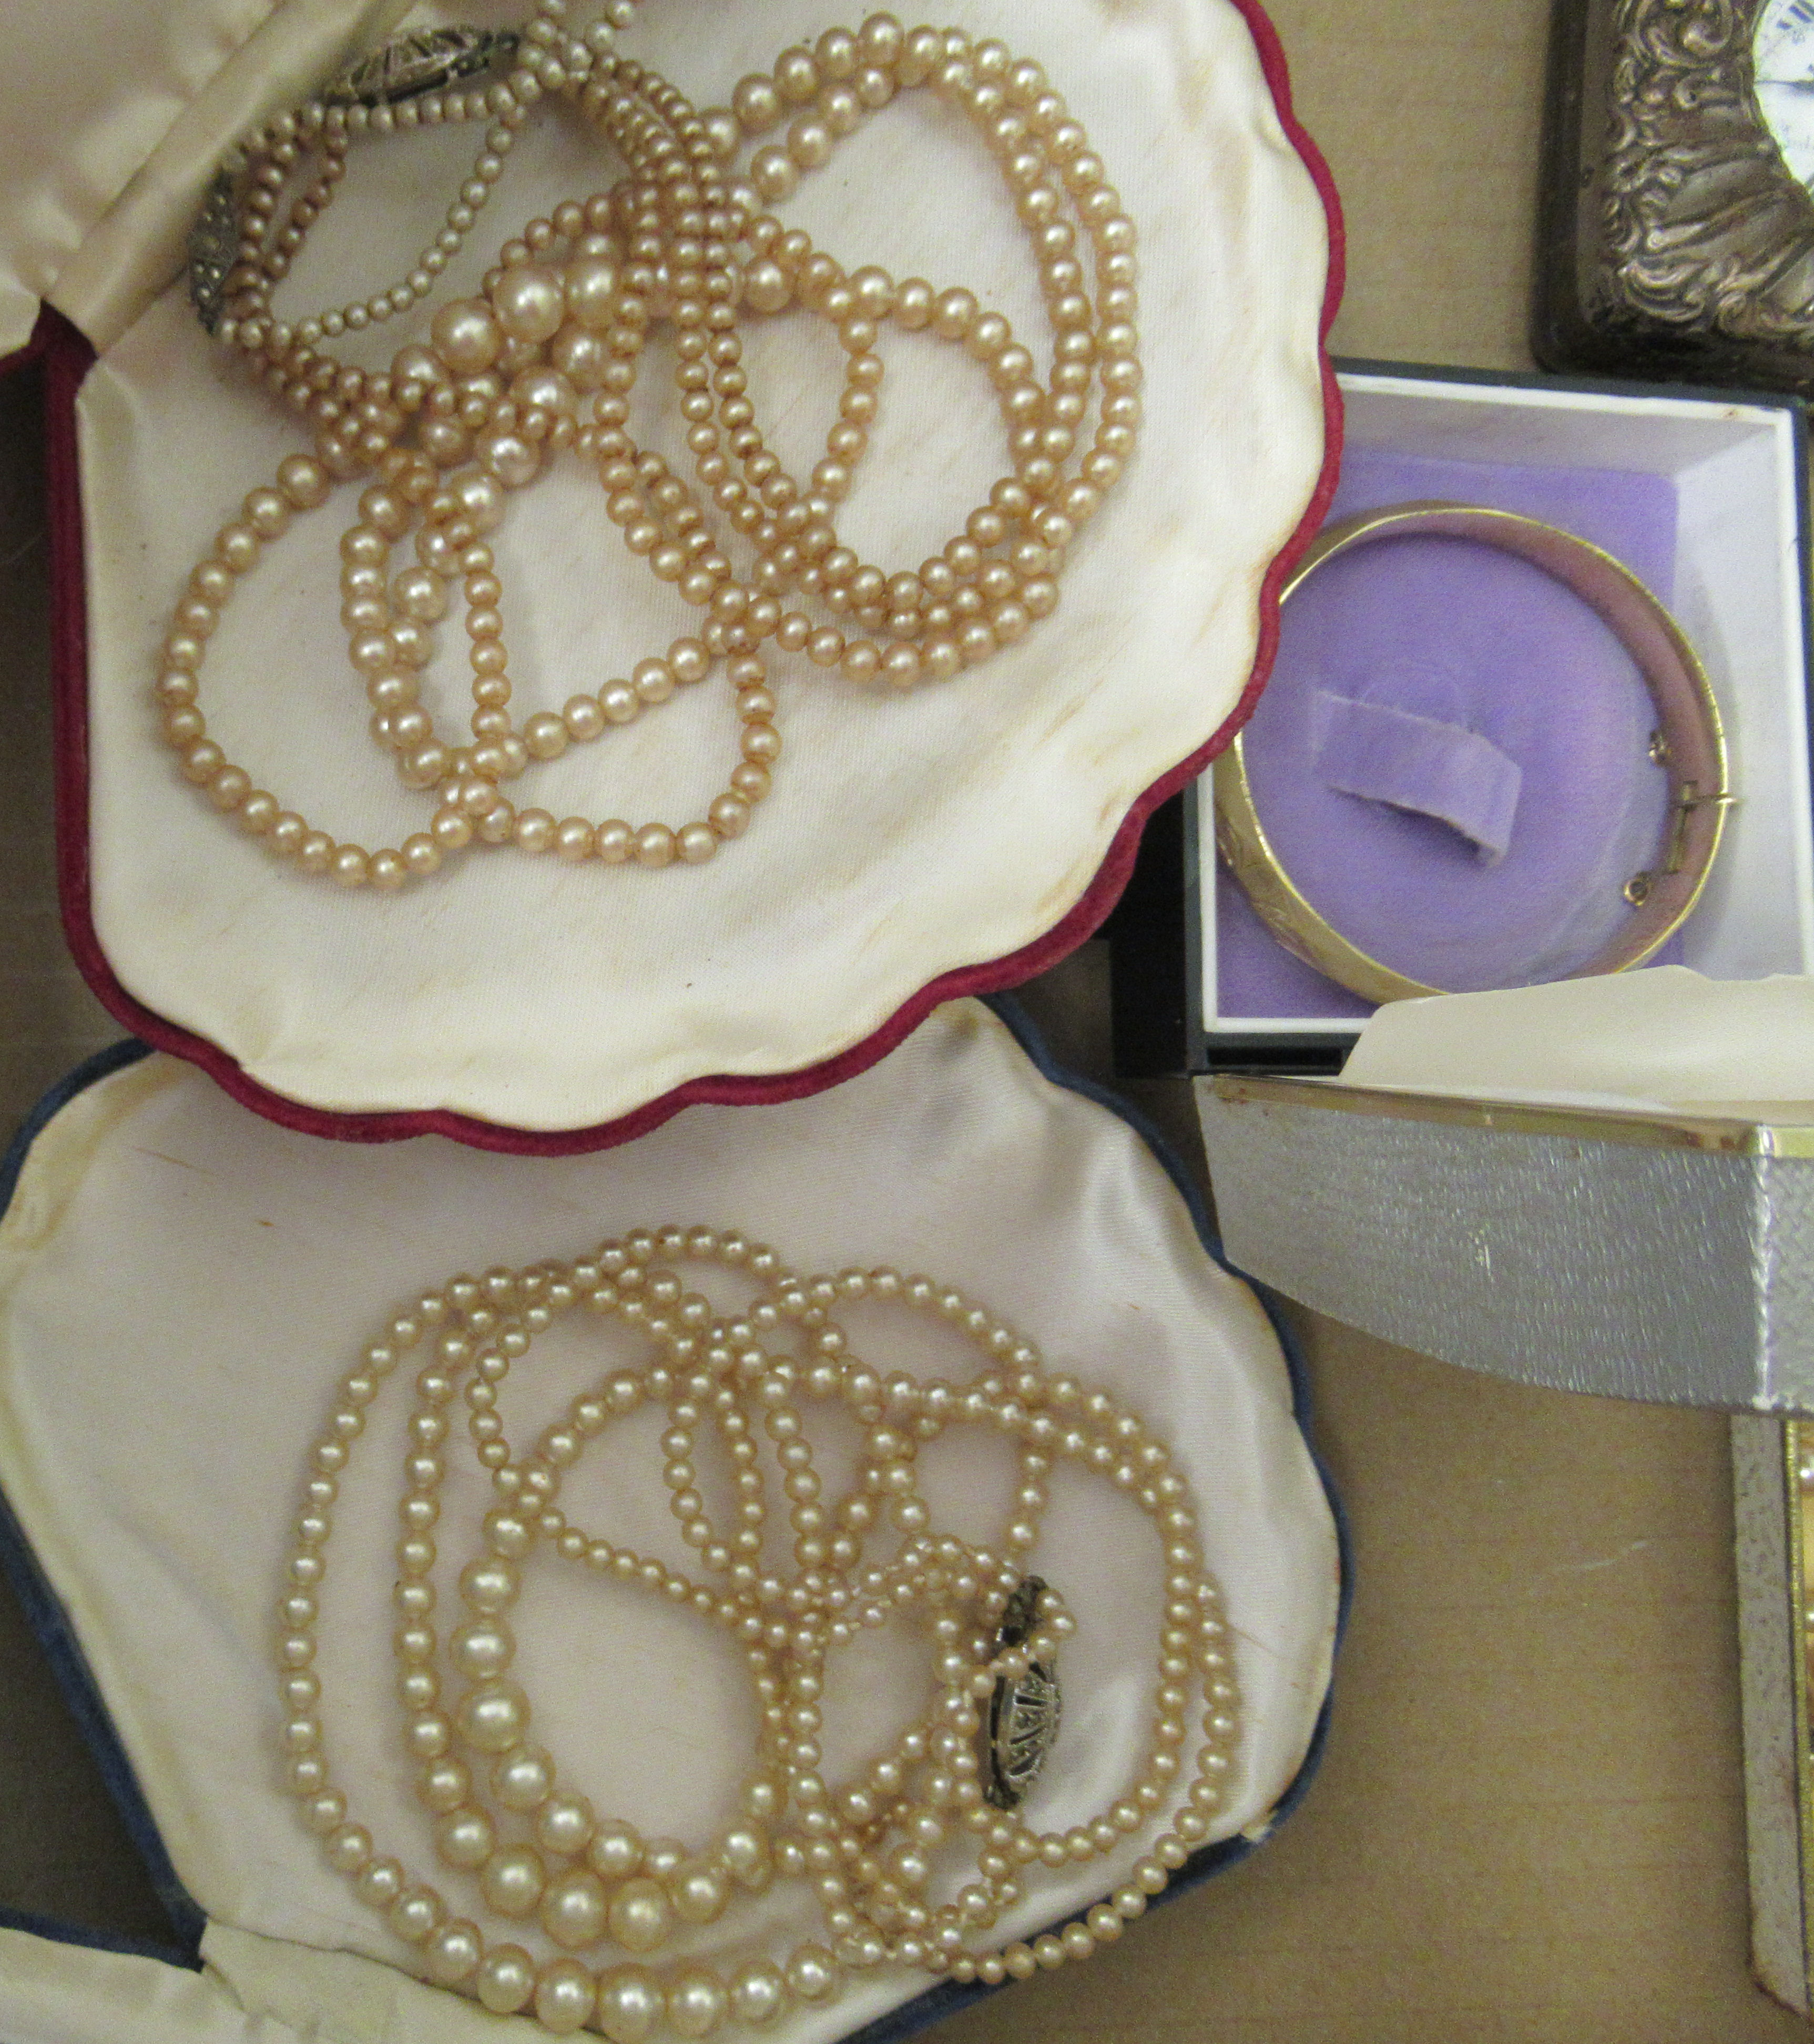 Edwardian and later items of personal ornament: to include pearl necklaces; two 9ct gold rings; - Image 4 of 5